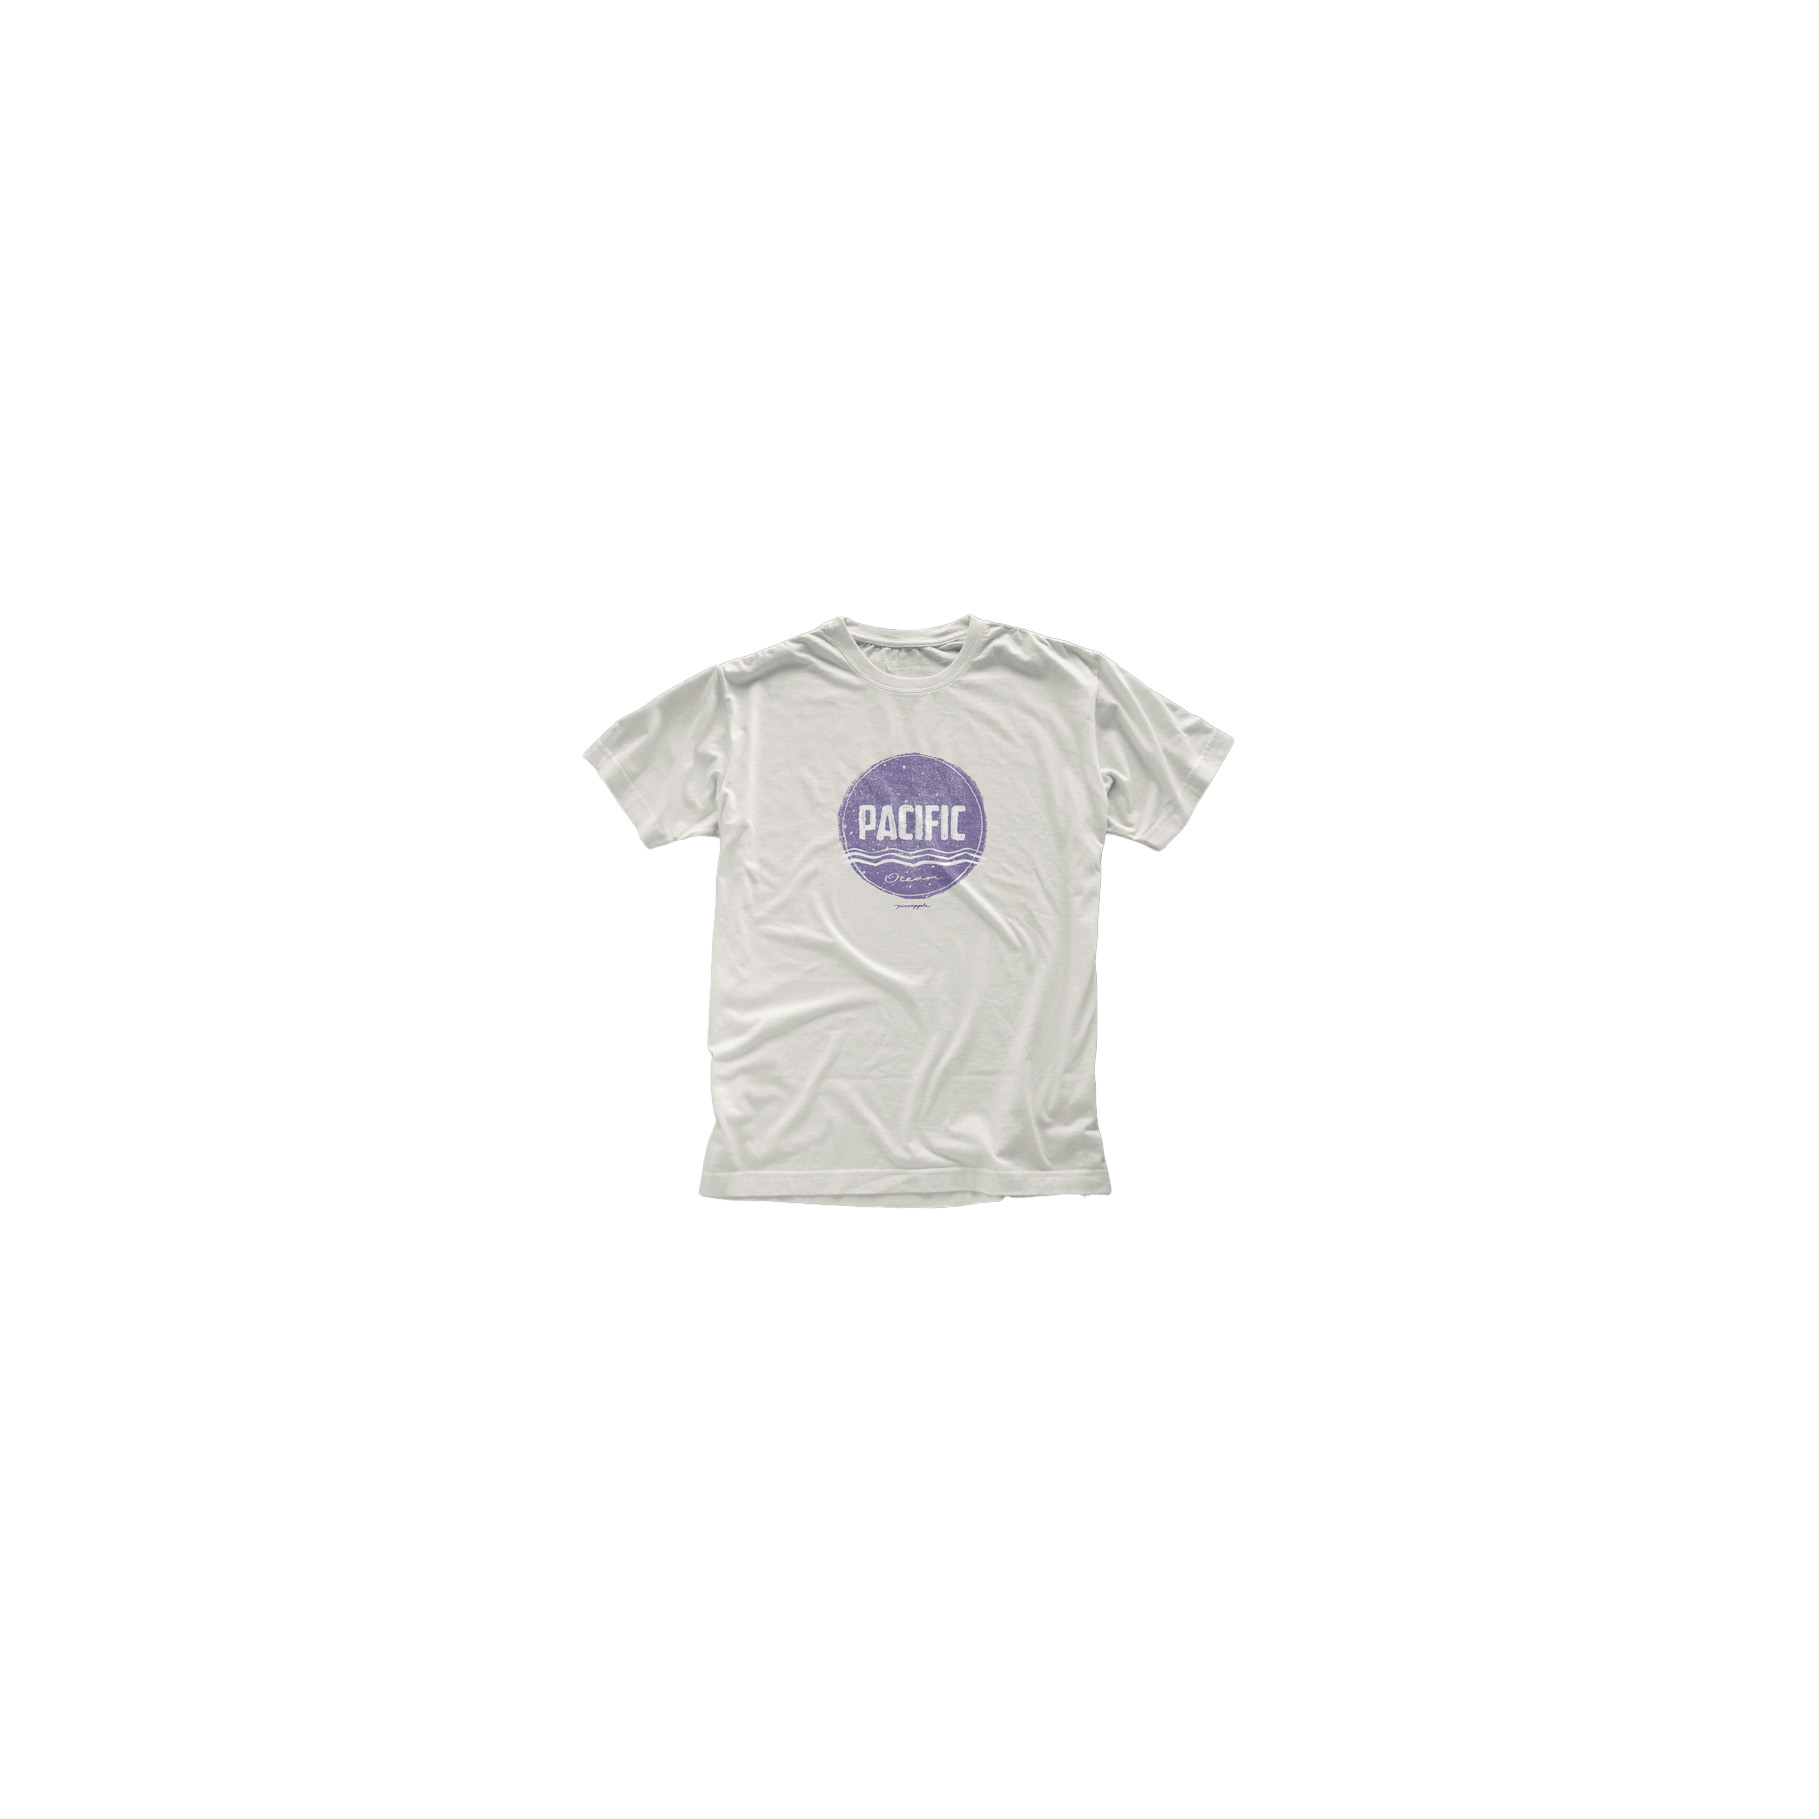 T-Shirt Silk Pacific Off White Pineapple